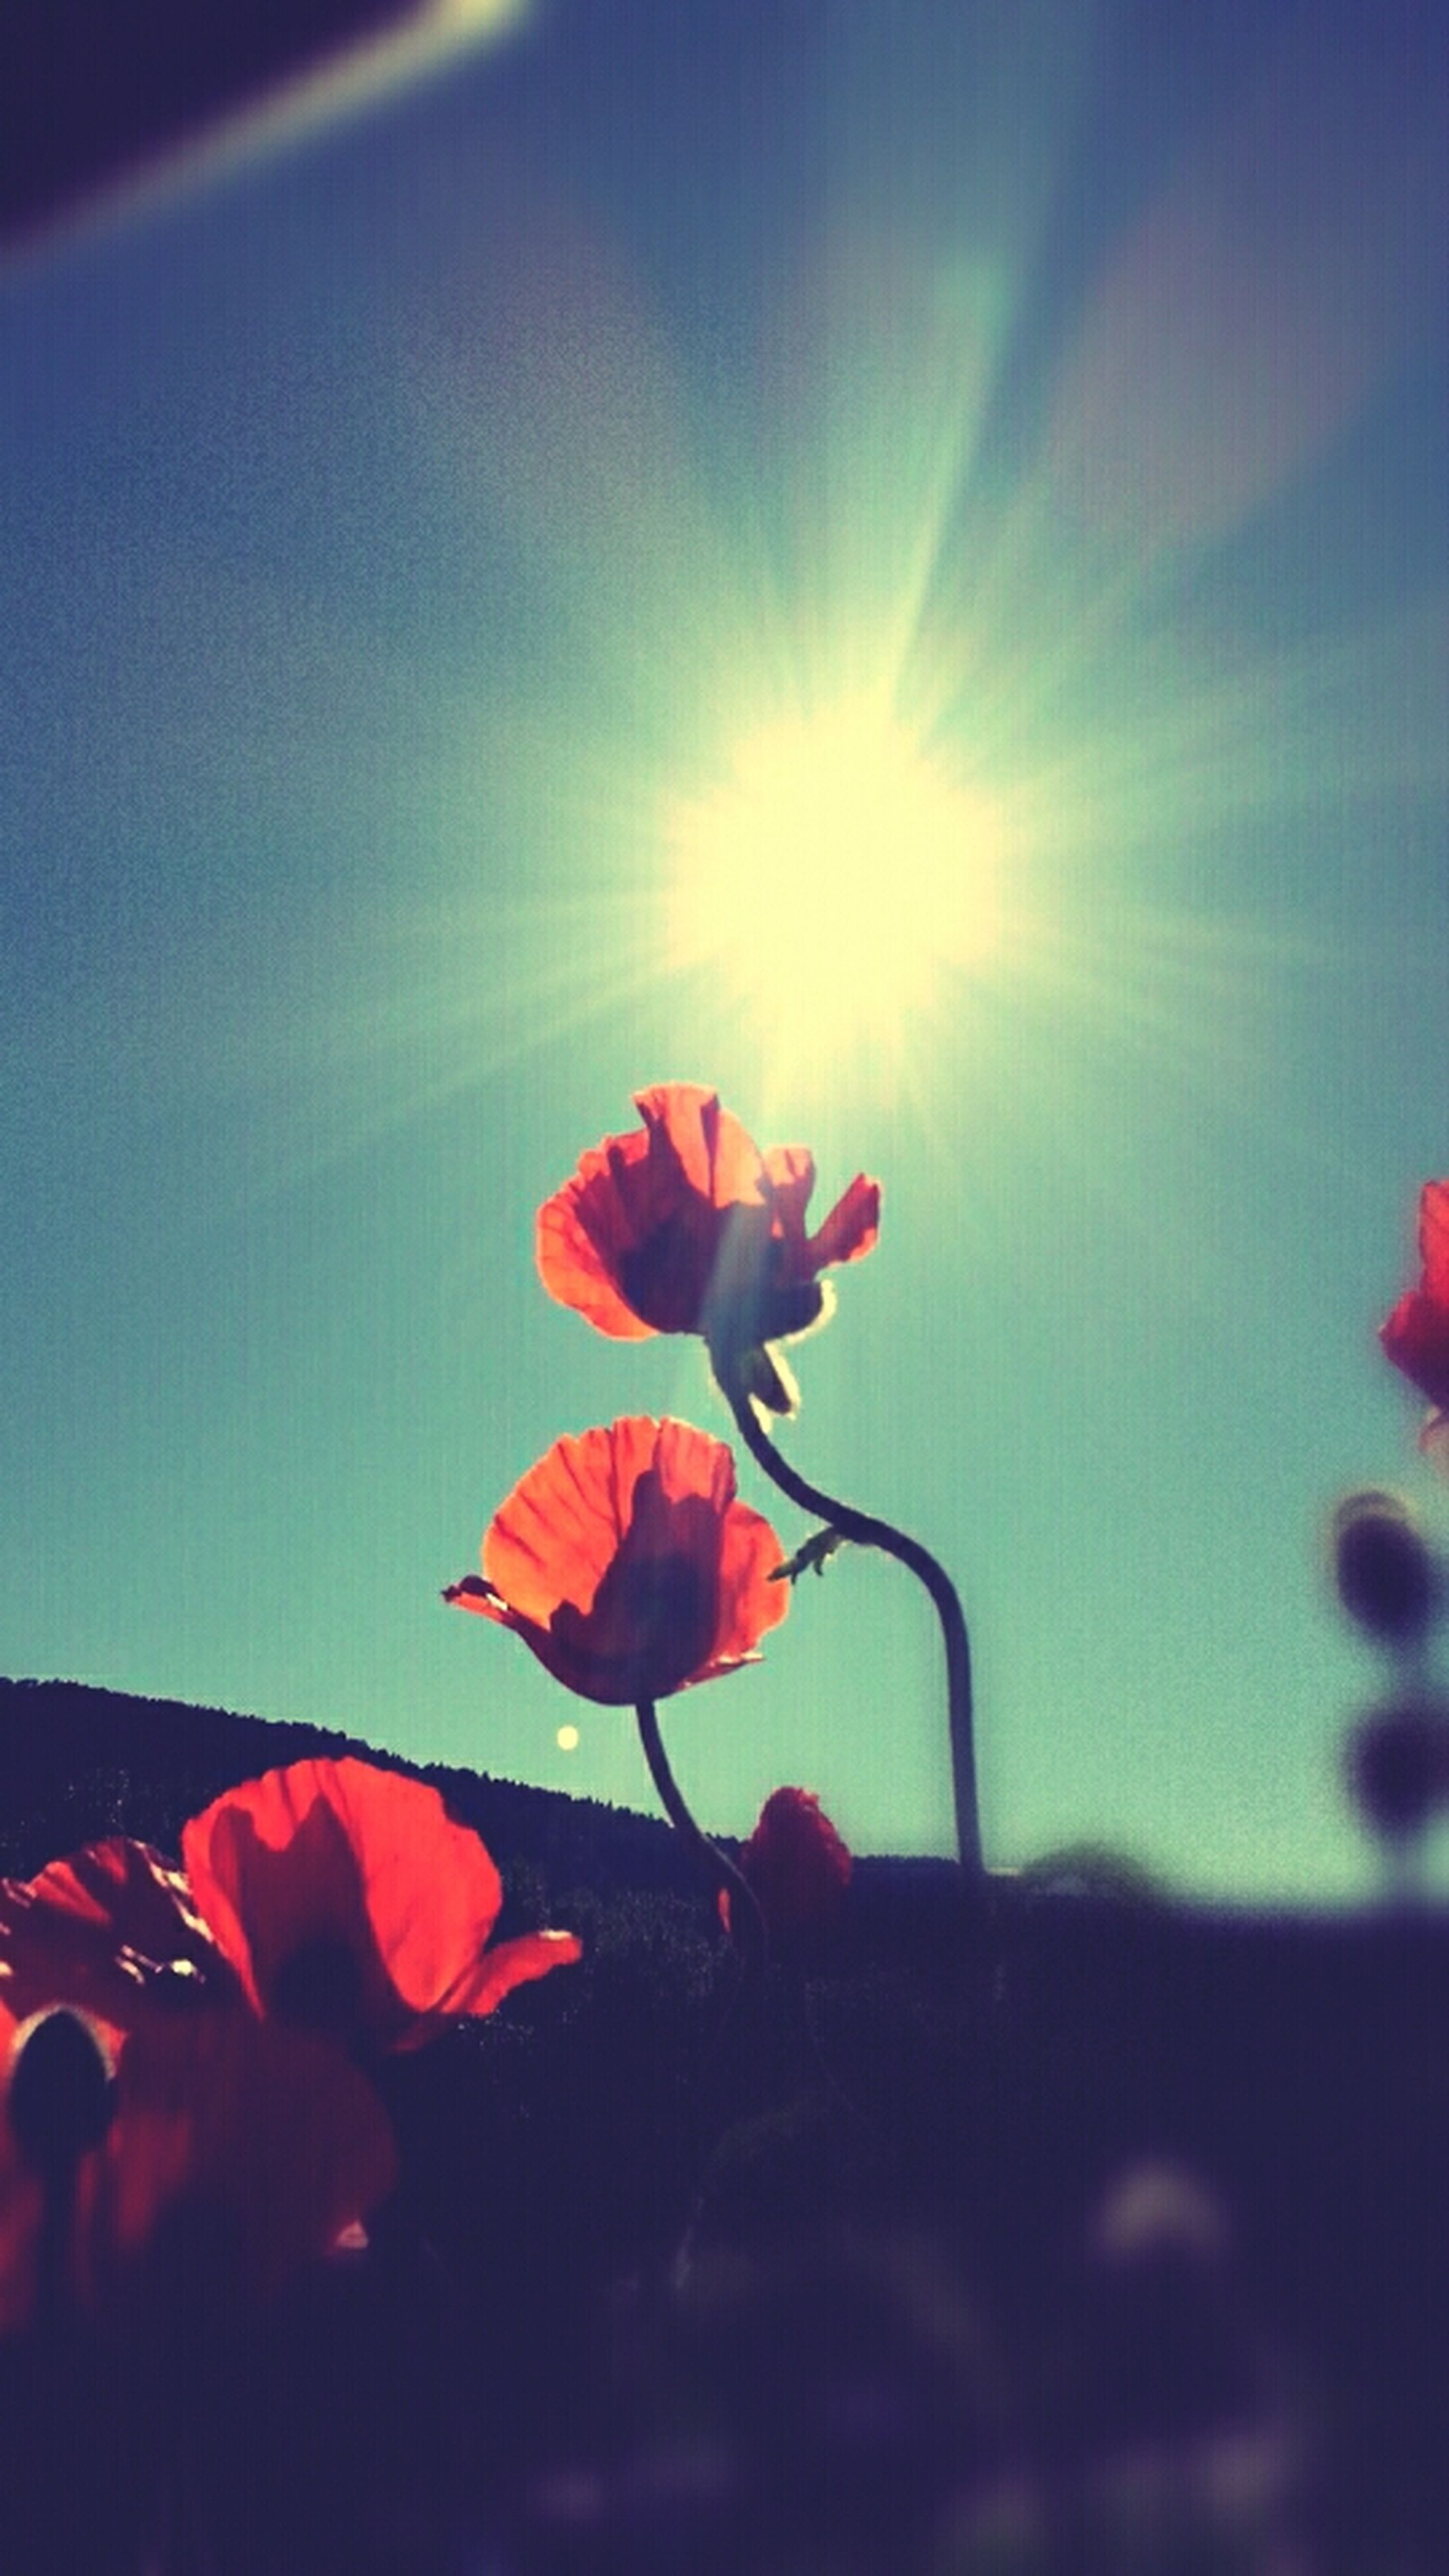 flower, petal, fragility, sun, freshness, beauty in nature, growth, sunlight, sunbeam, nature, flower head, sky, plant, blooming, stem, lens flare, low angle view, leaf, close-up, focus on foreground